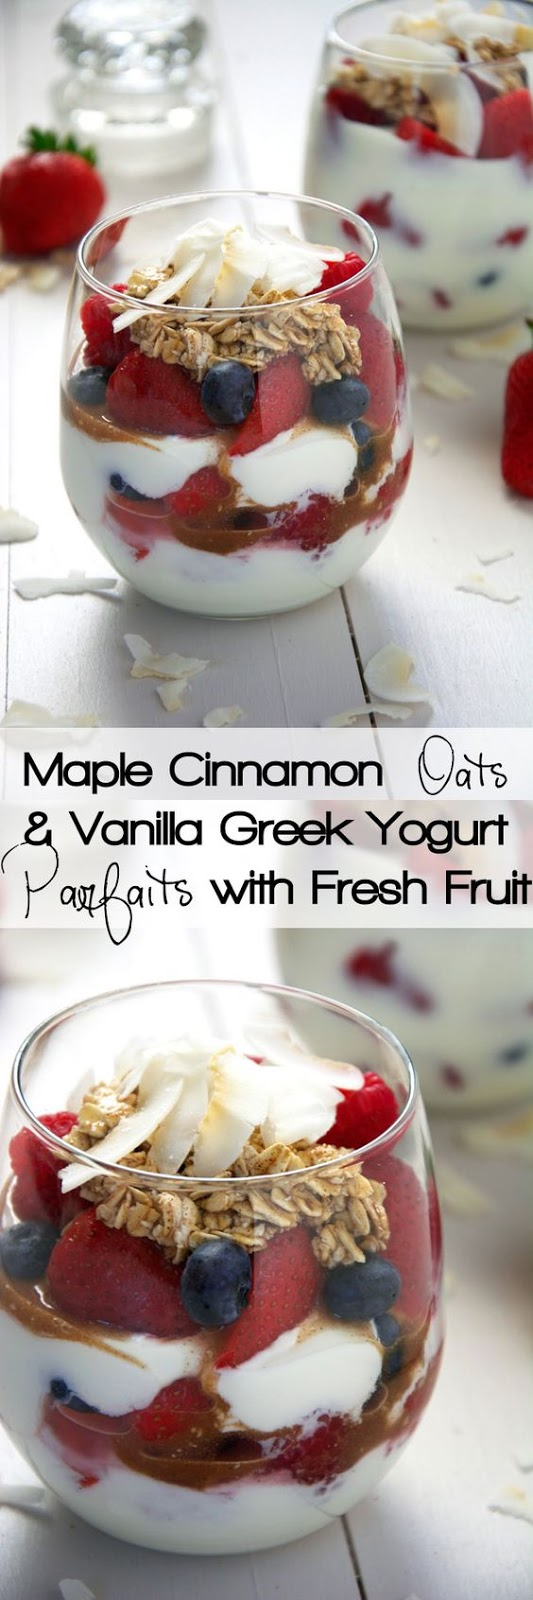 maple cinnamon oats and vanilla greek yogurt parfaits